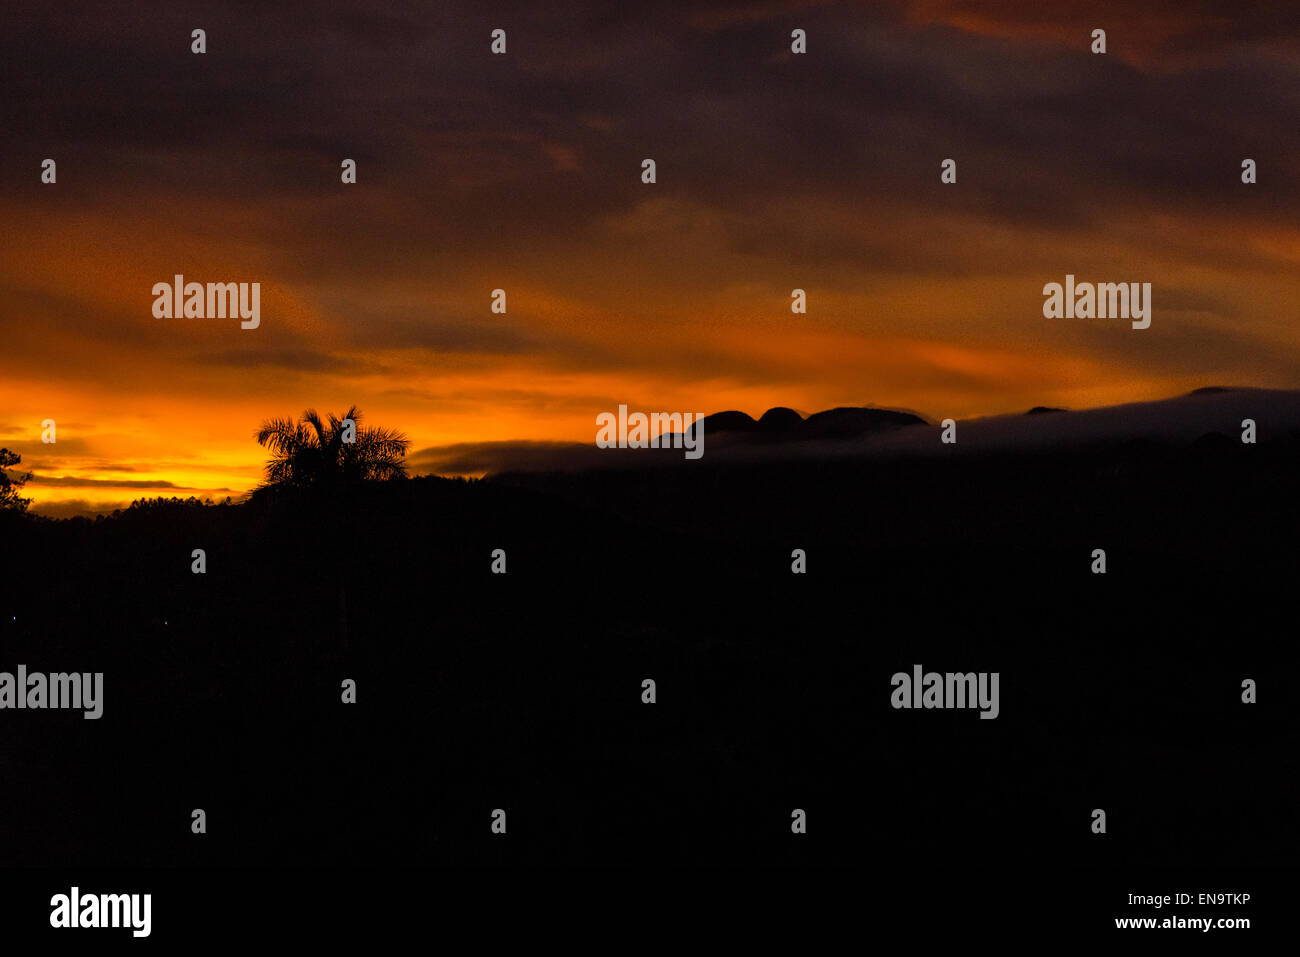 Cuba valley Valle de Vinales panorama view hills palm trees at sunset dramatic orange sky & storm clouds Stock Photo